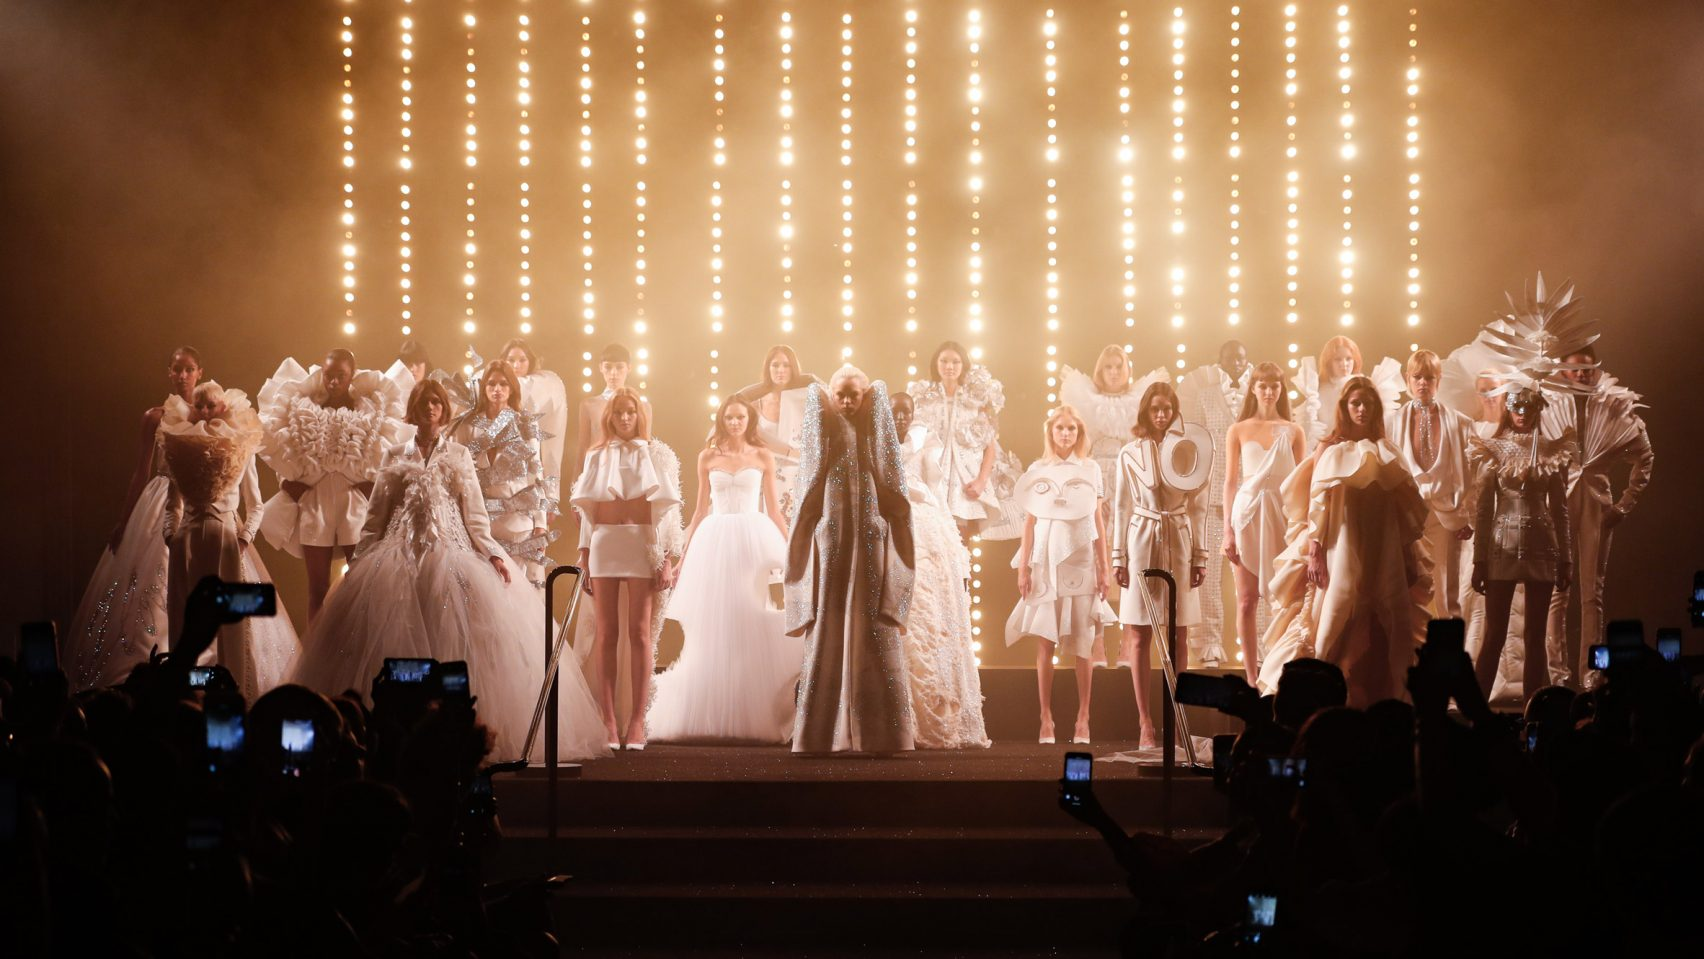 Viktor Rolf Mark 25th Anniversary With All White Couture Collection